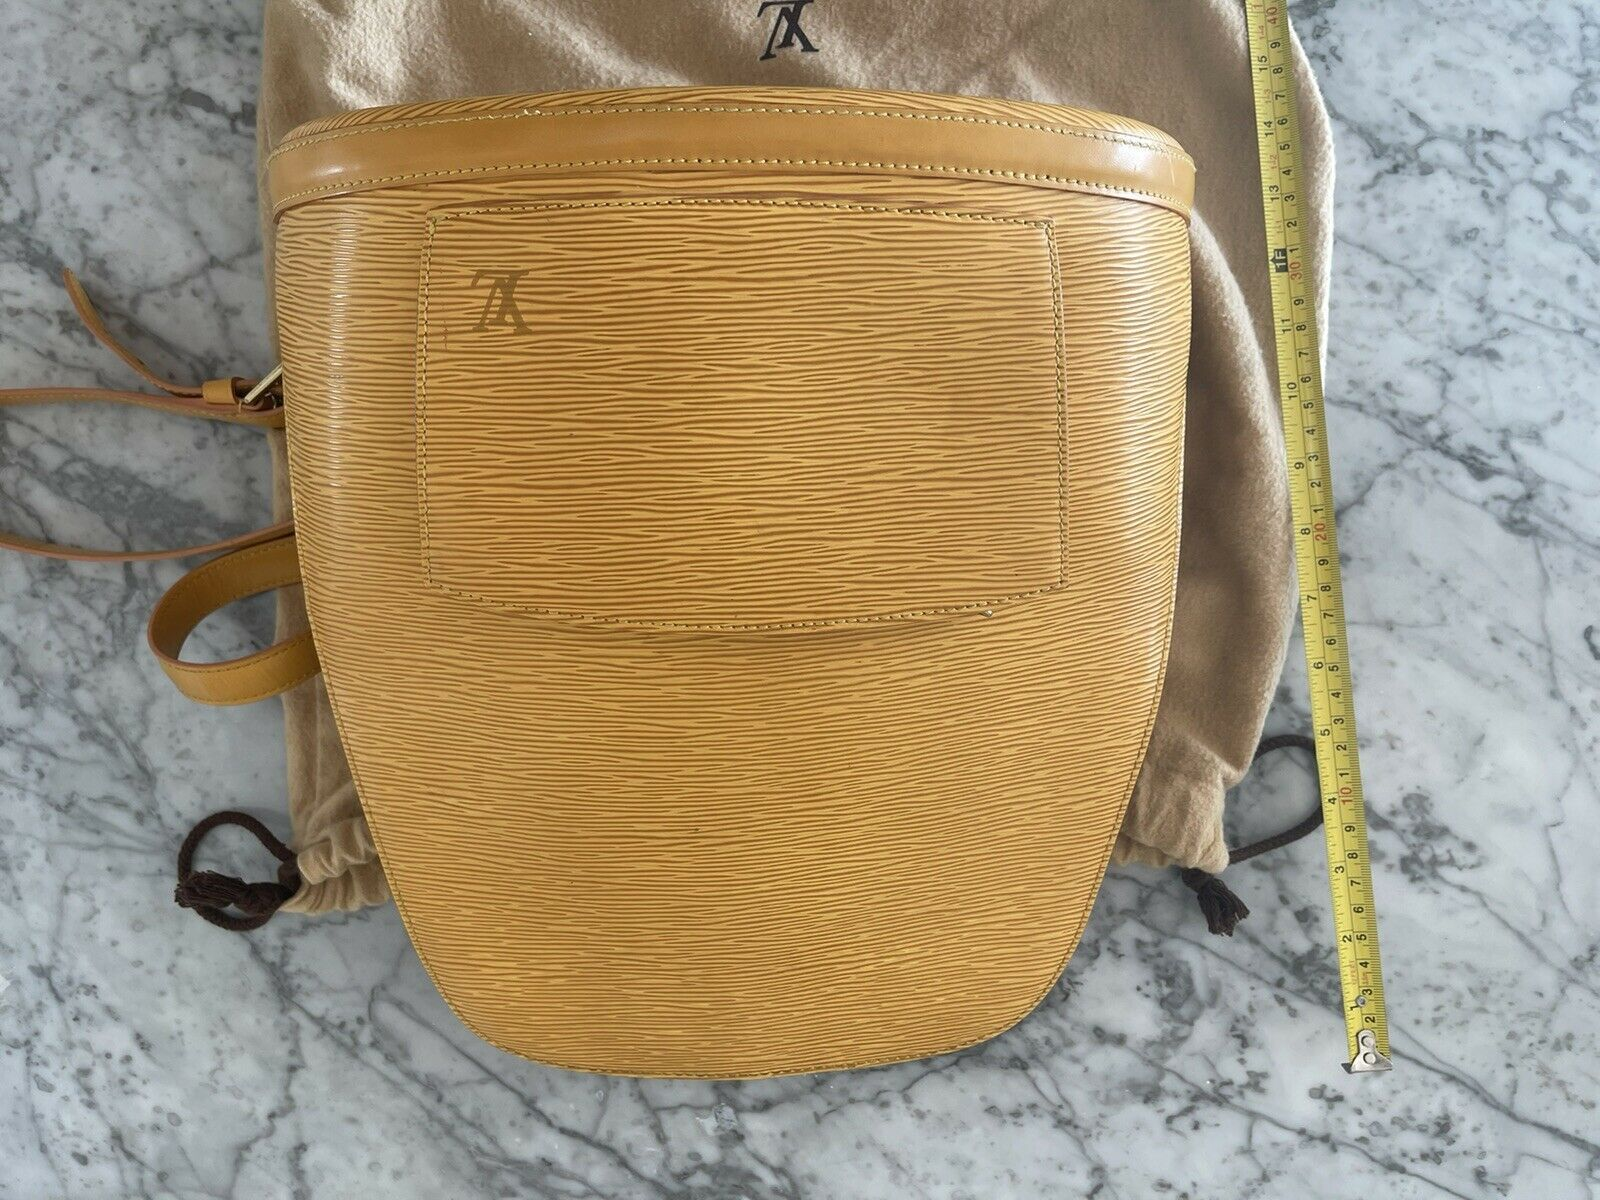 louis vuitton backpack - image 6